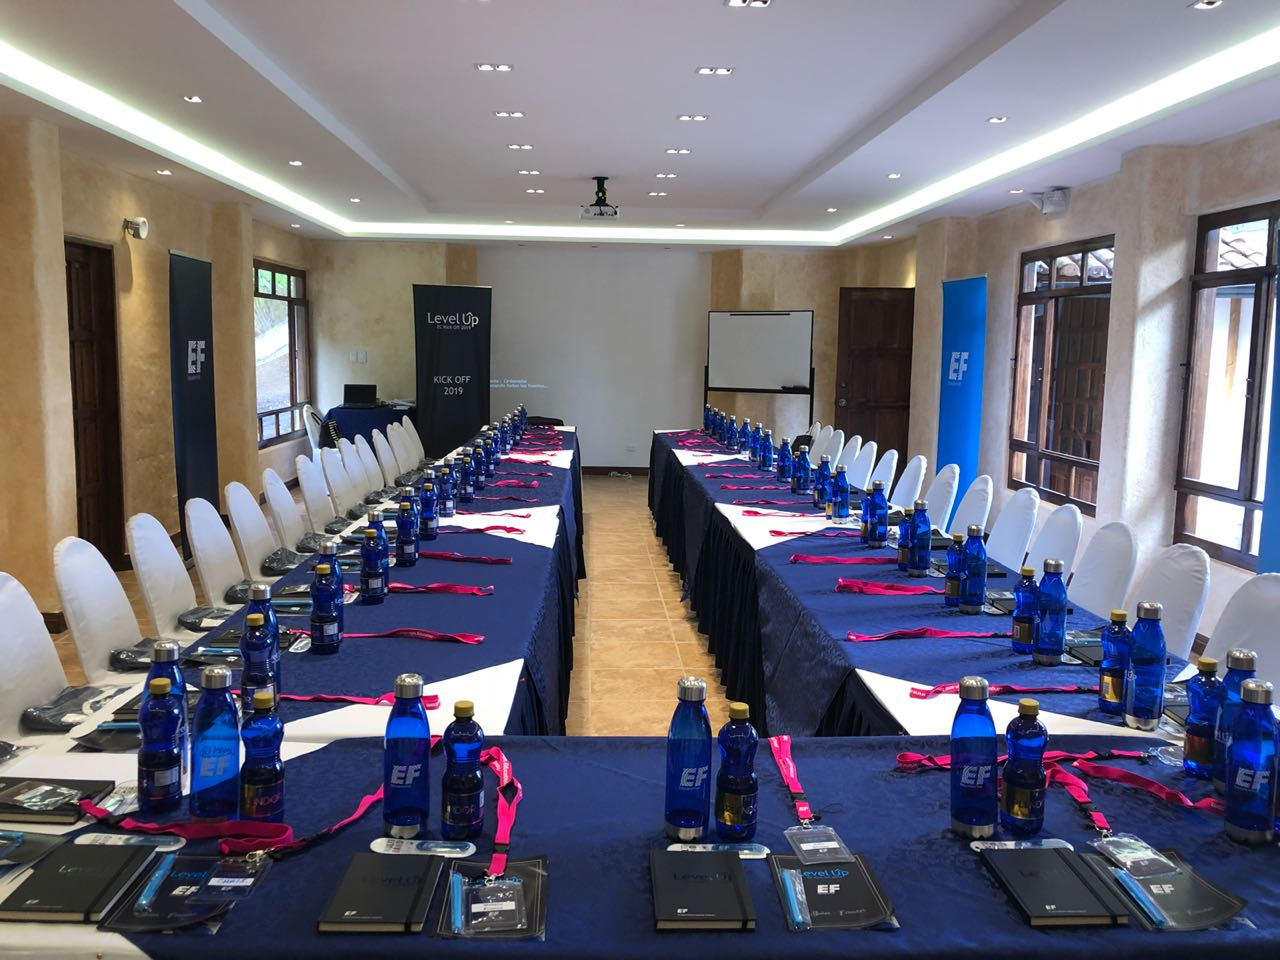 CONFERENCE ROOM - Capacity: 60 people.Far from the noise, green and spacious spaces and the tranquility of being safe in a warm environment with multiple adventure activities and SPA.